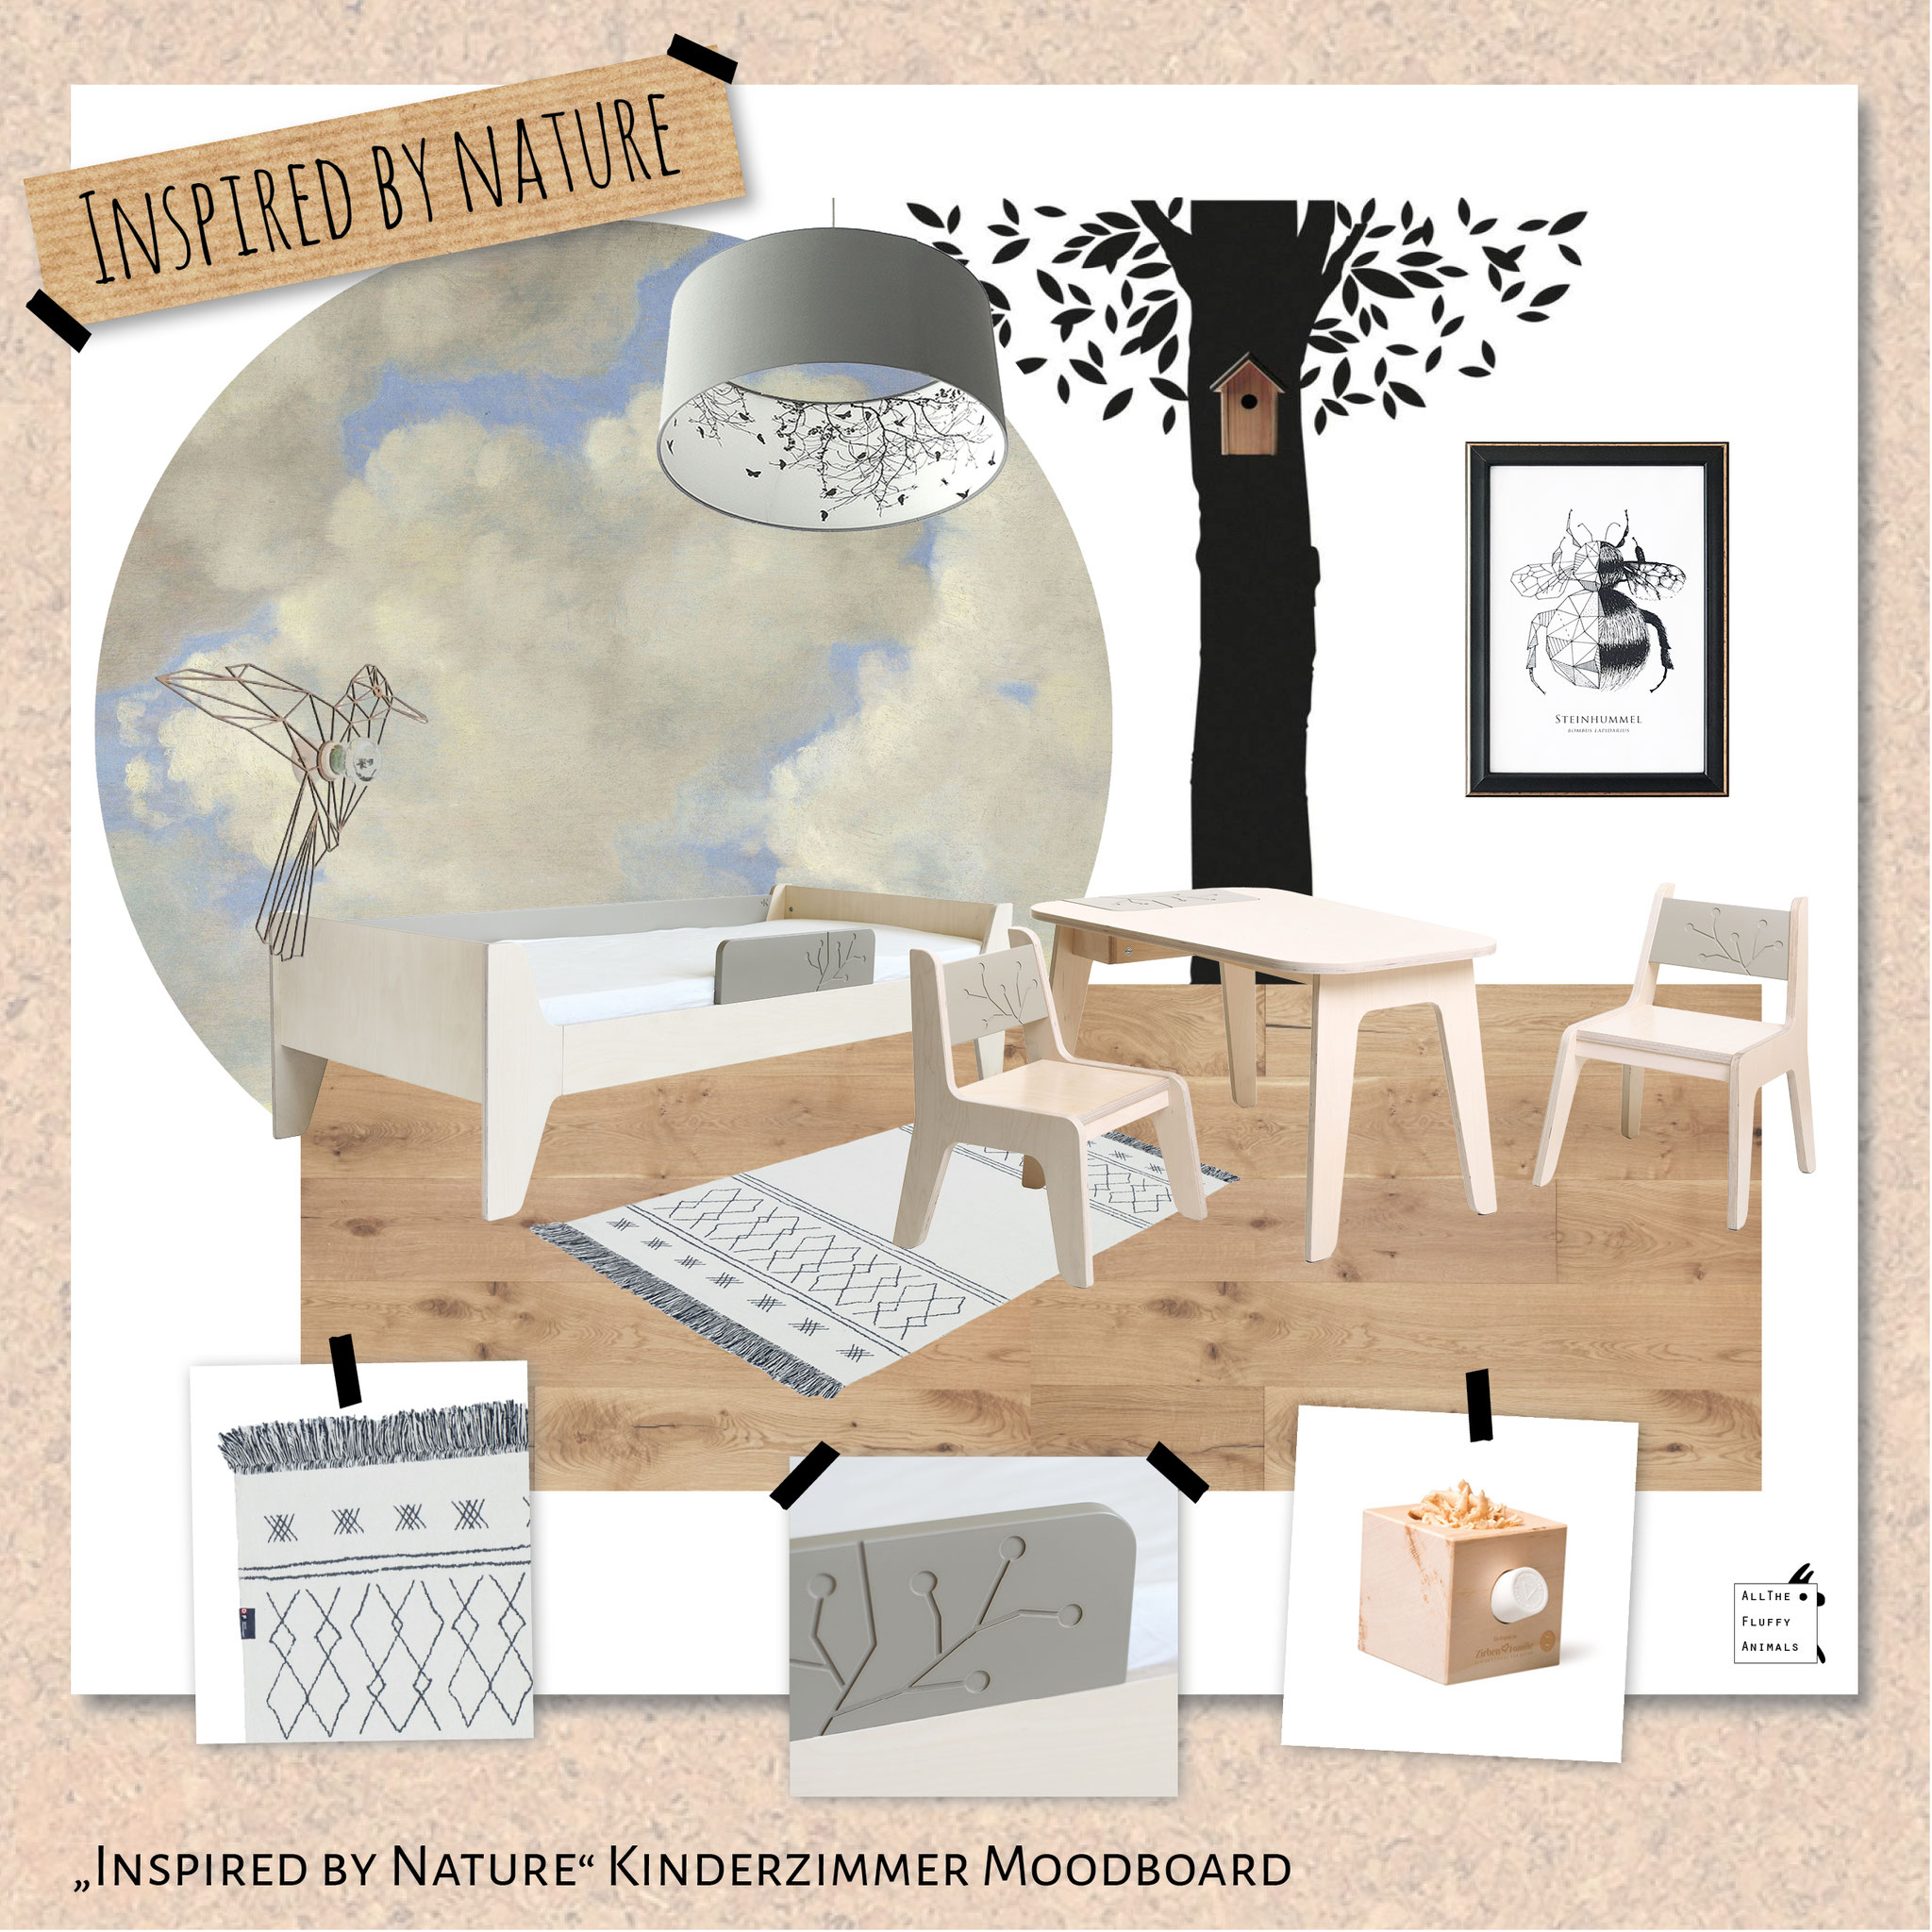 "Deckenlampe im Kinderzimmer-Moodboard ""Inspired by nature"""